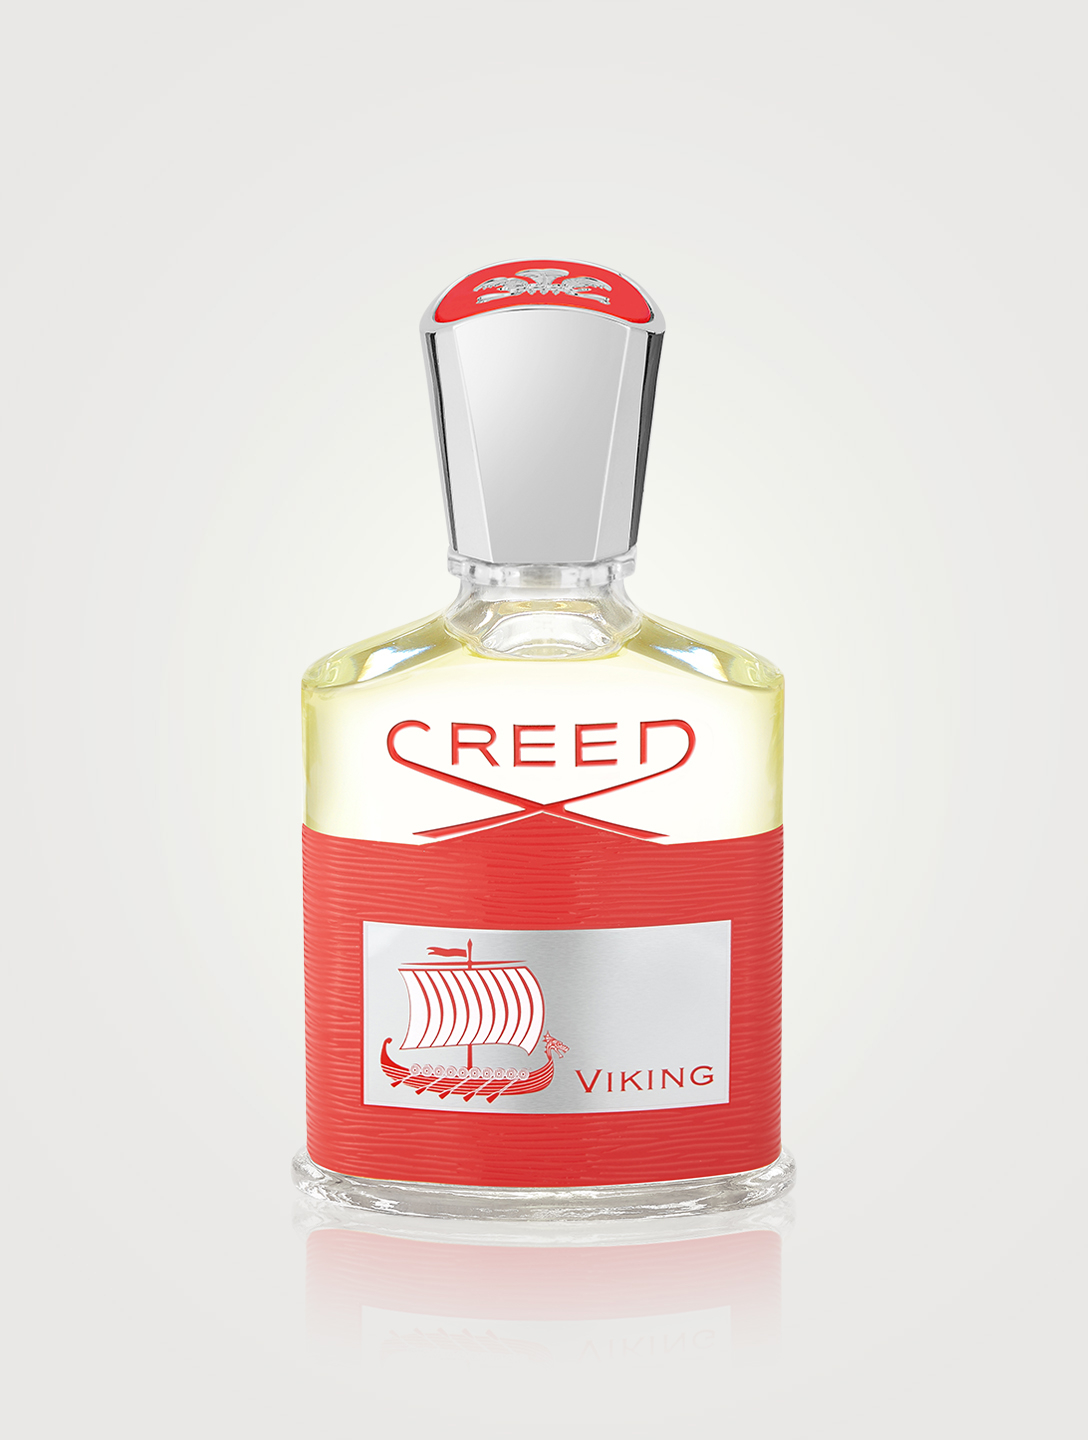 CREED Viking Eau de Parfum Designers